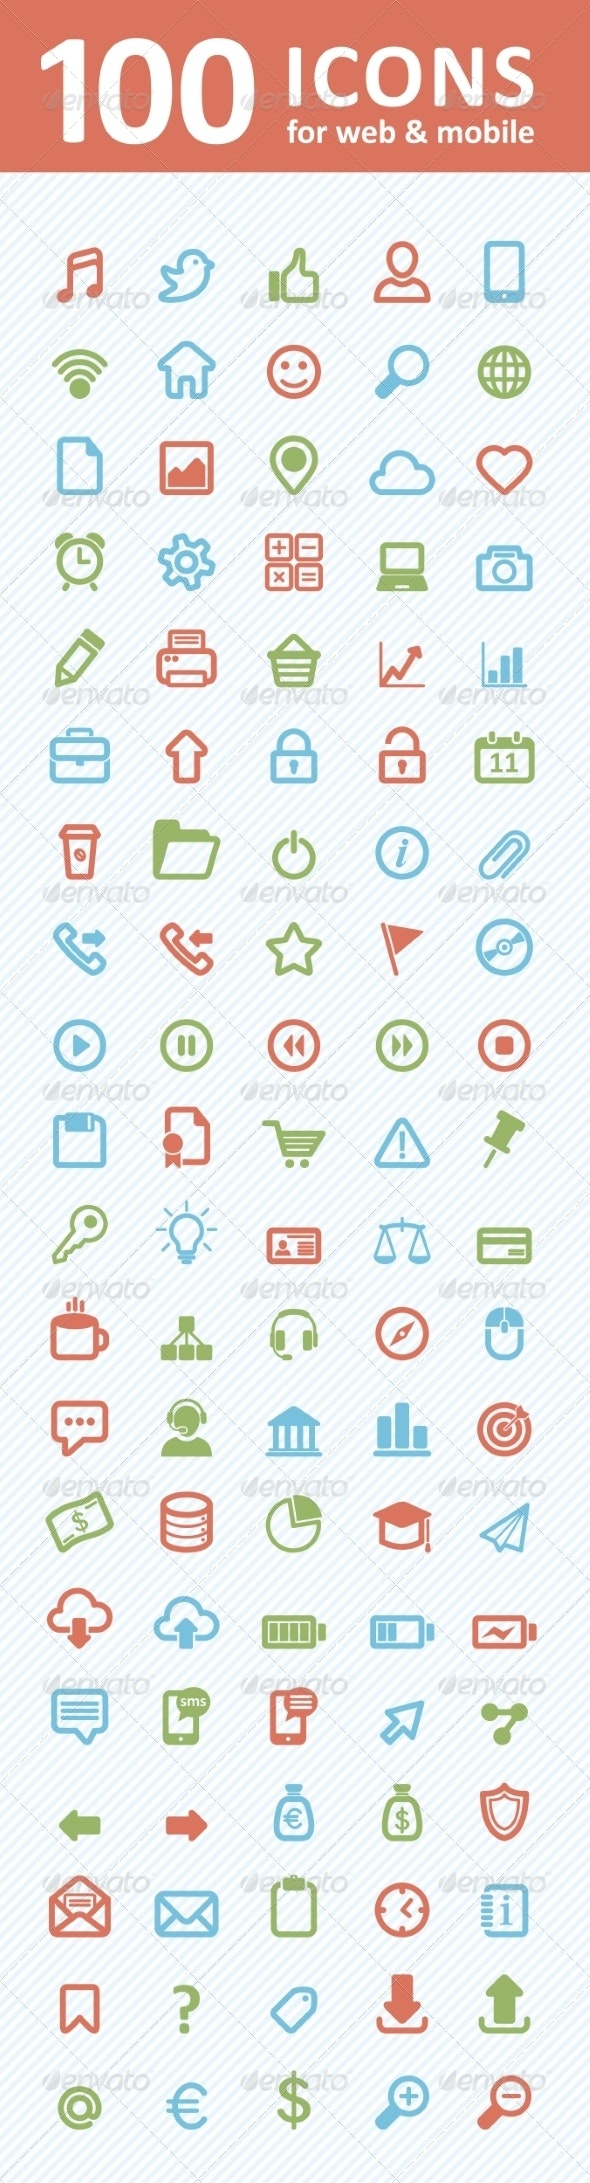 100 Icons for Web and Mobile - Web Icons